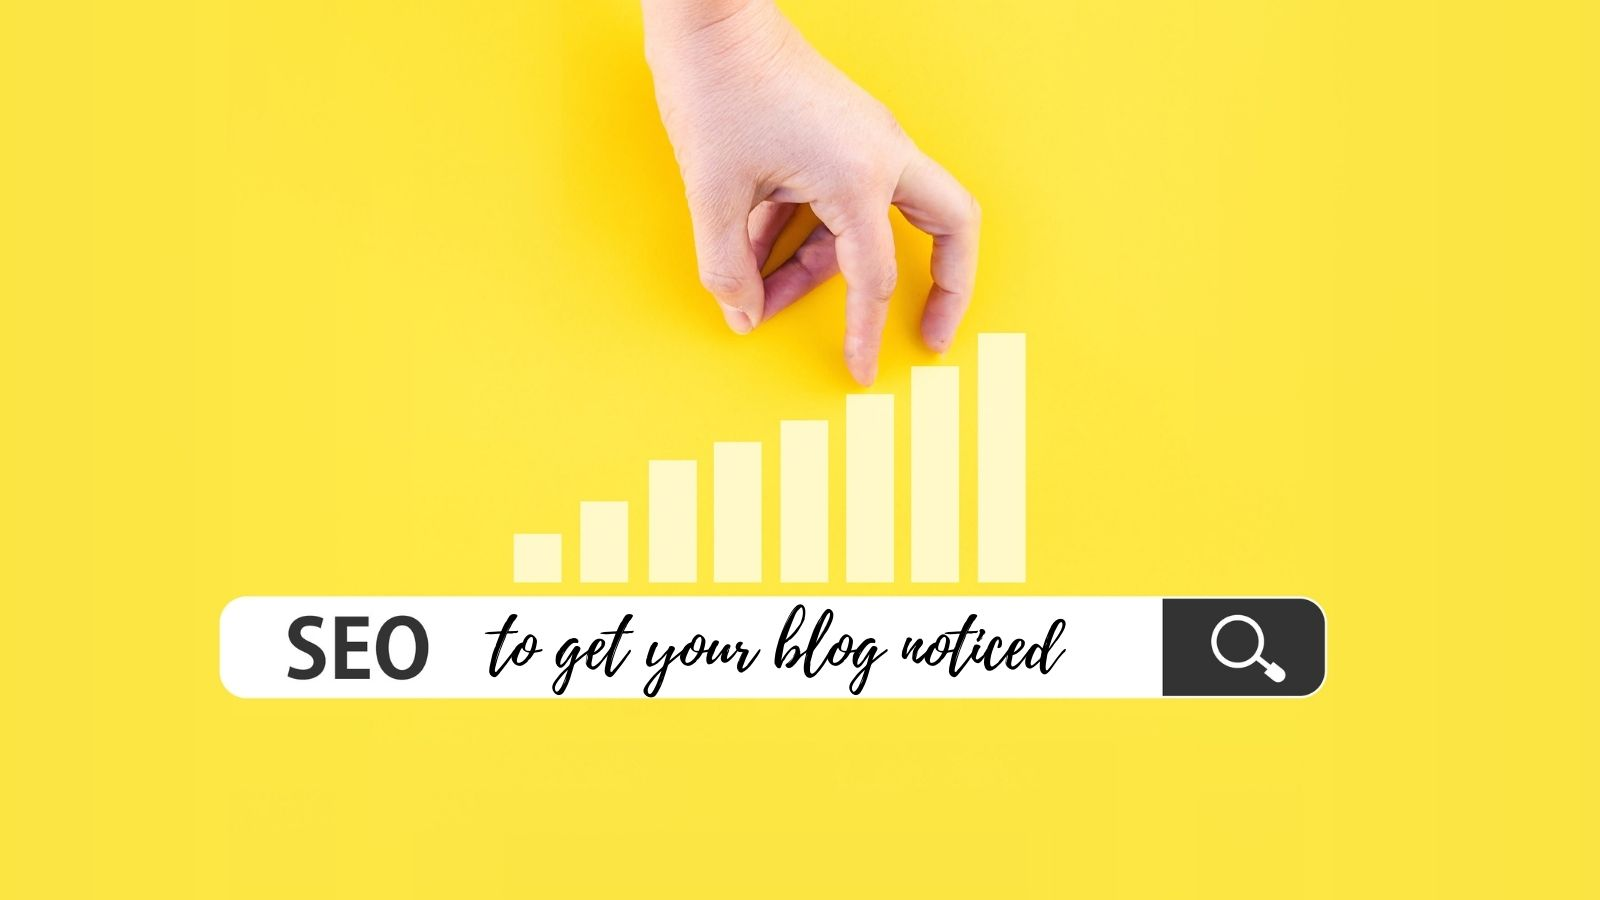 use SEO to get your blog noticed